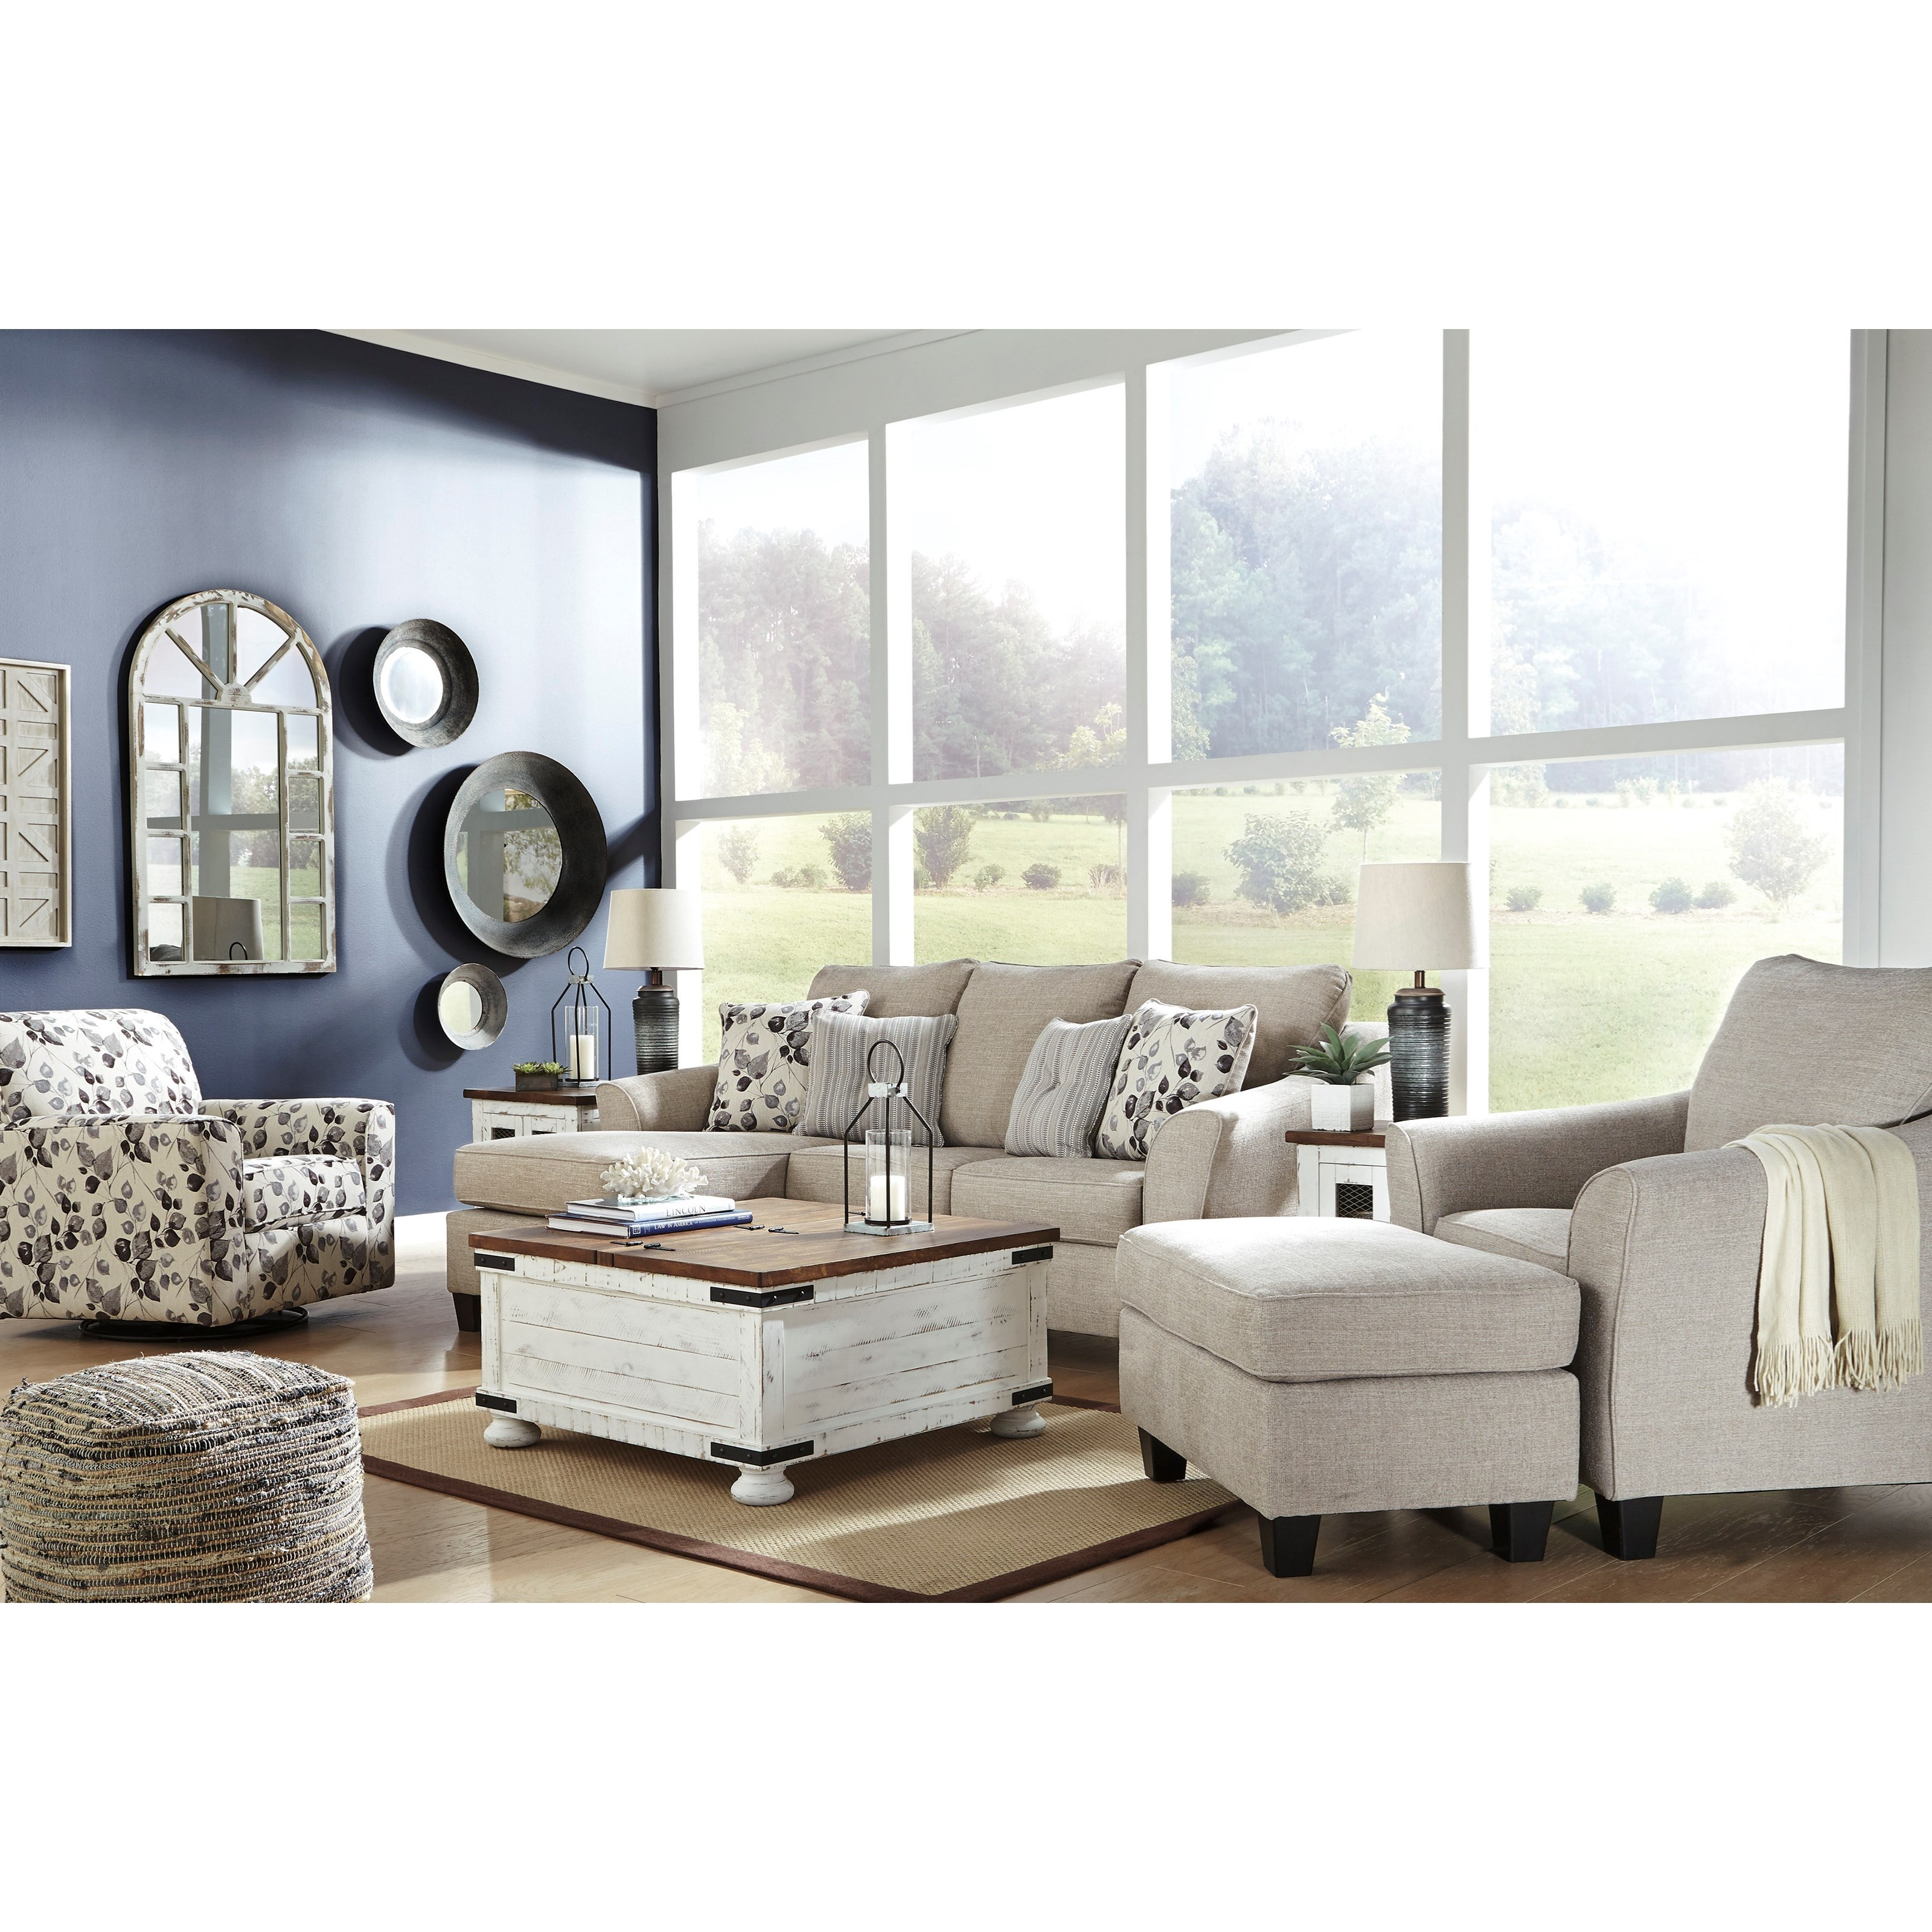 Abney Stationary Living Room Group by Benchcraft at Furniture Superstore - Rochester, MN